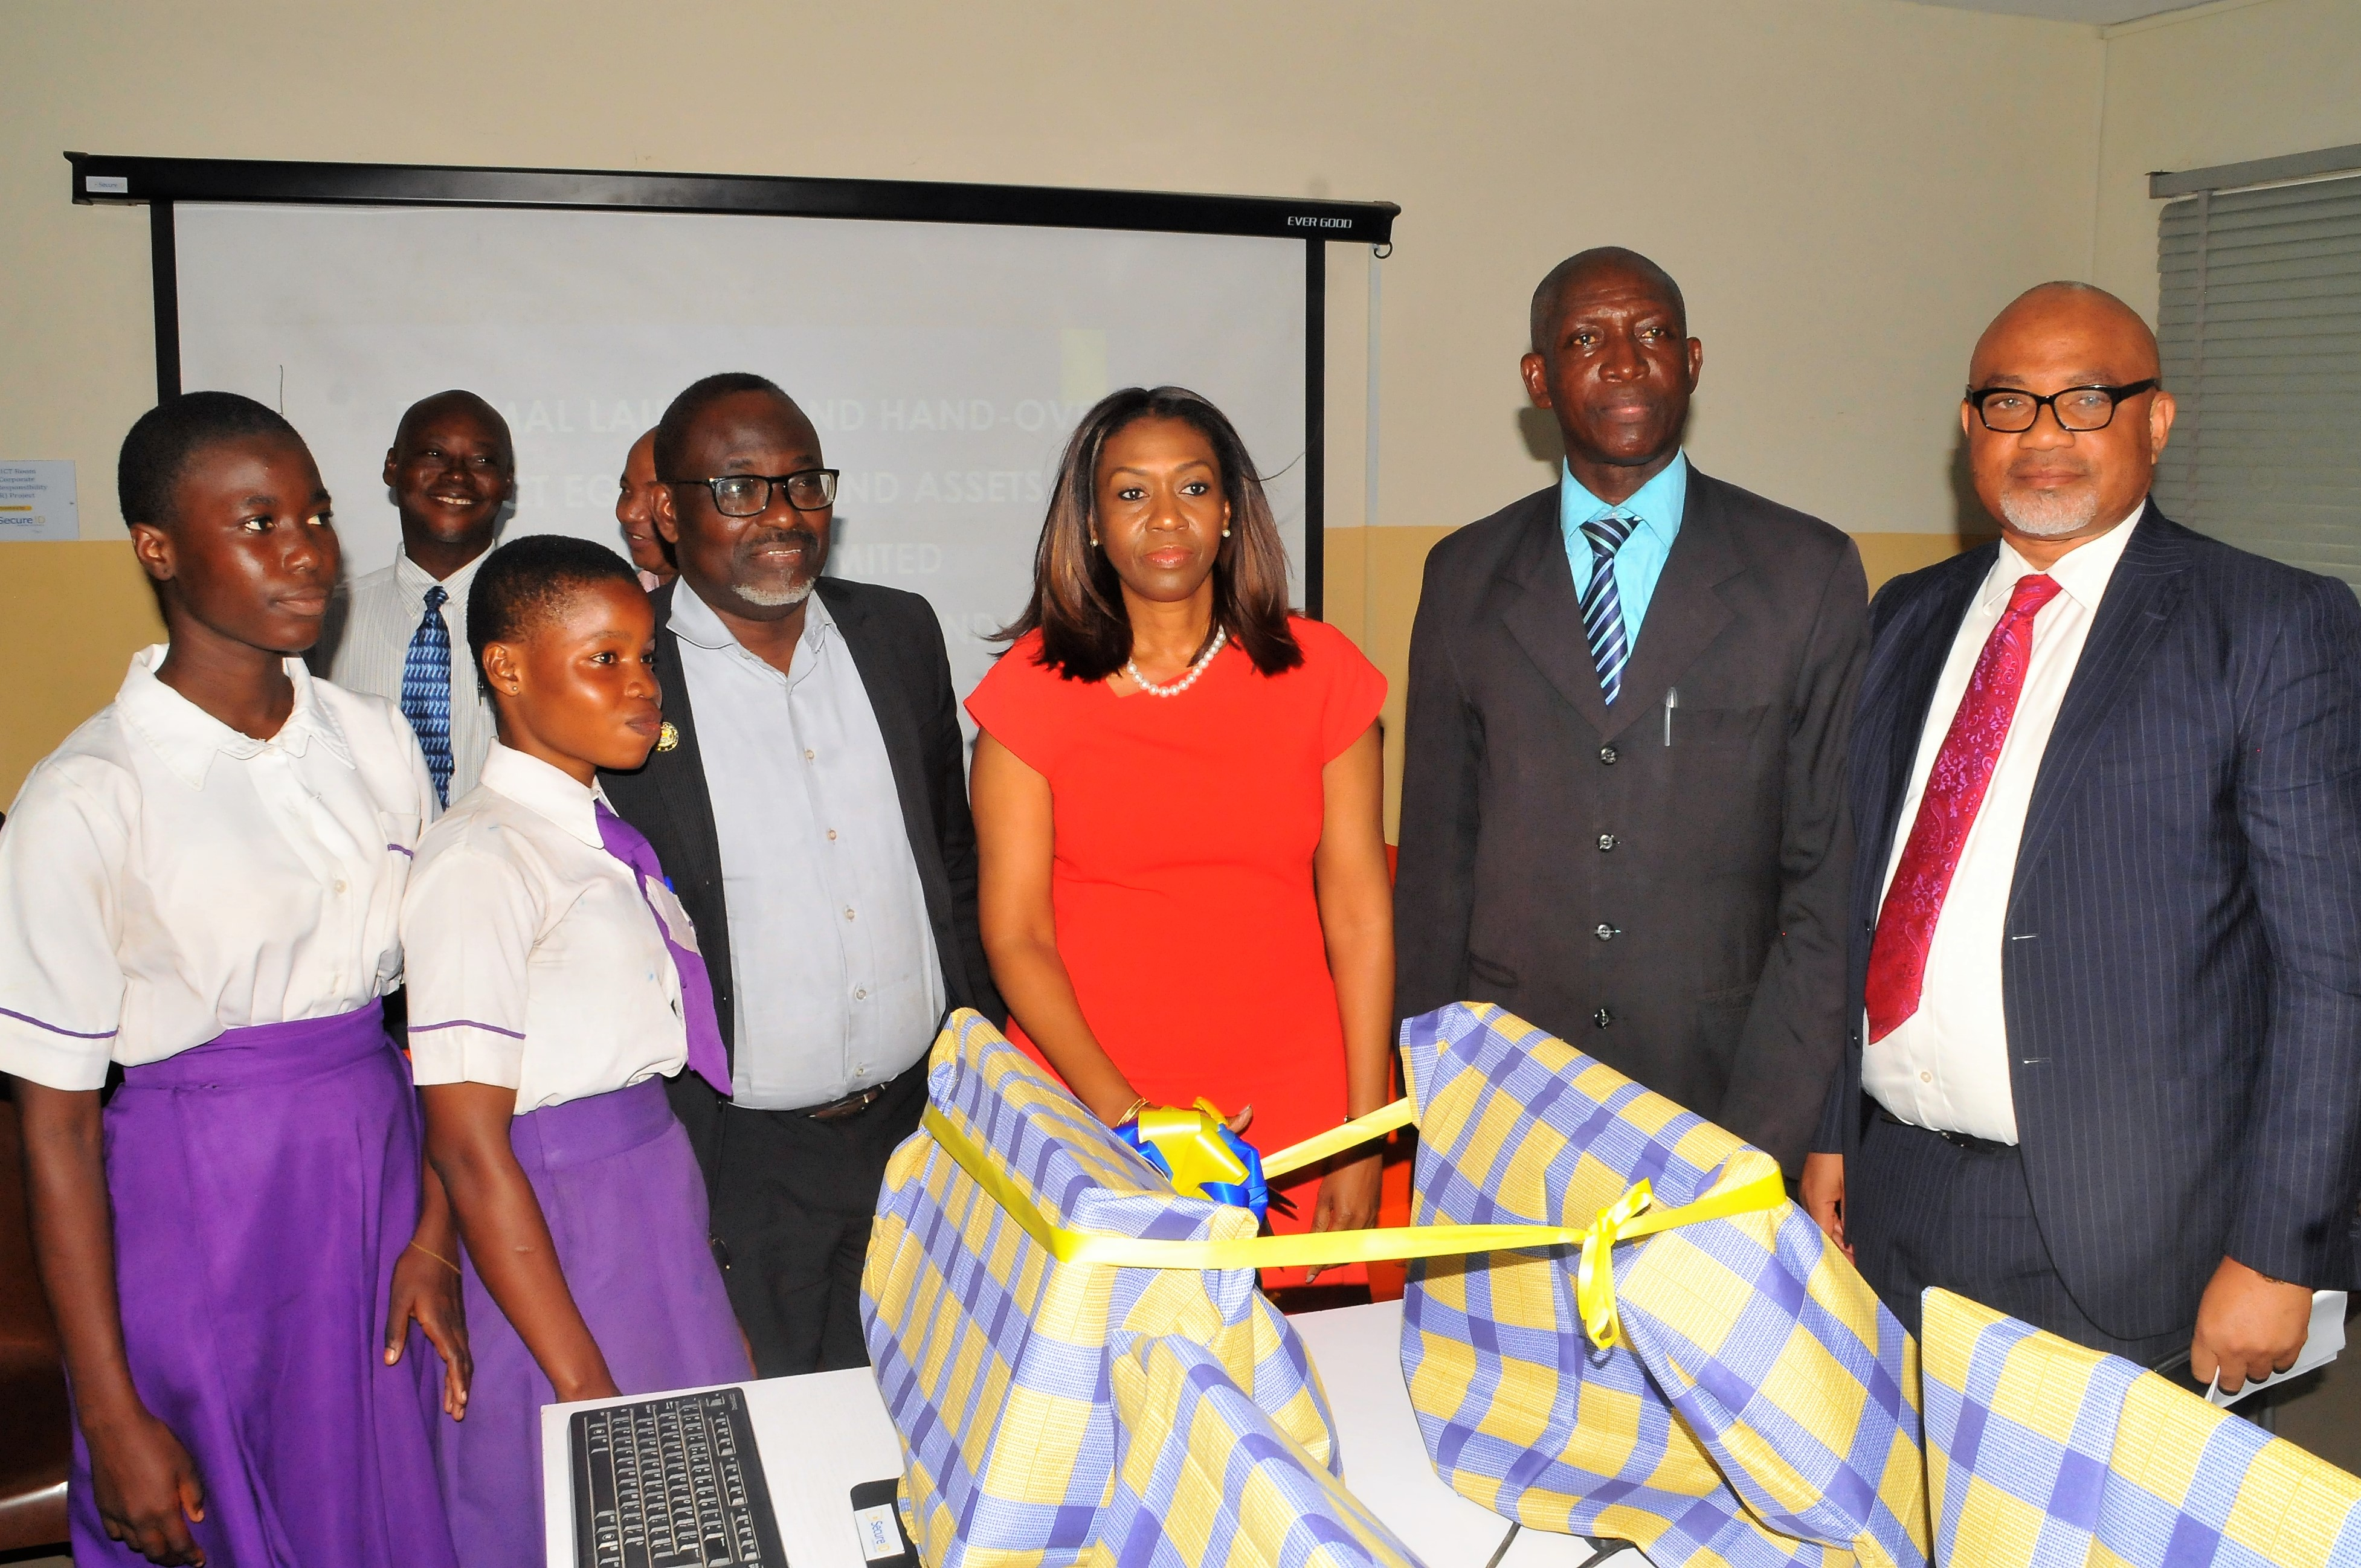 Managing Director/CEO, SecureID Limited, Mrs. Kofo Akinkugbe (3rd right), flanked by Principal, Ajumoni Senior Secondary School, Mushin, Mr. Benson Megbowon (2ND right); Board Director, SecureID Limited, Mr. Adeyinka Adeyemi (1ST right); Director, Schools Administration, Education District 6, Ministry of Education, Lagos State, Mr. Olubunmi Olukoya (3rd left) and students of Ajumoni Senior Secondary School, Mushin, at the CSR Launching and Hand-over of ICT Equipment and Assets donated by SecureID Limited to Ajumoni Senior Secondary School, Iyana-Isolo, Mushin, A Lagos State Government Secondary School.